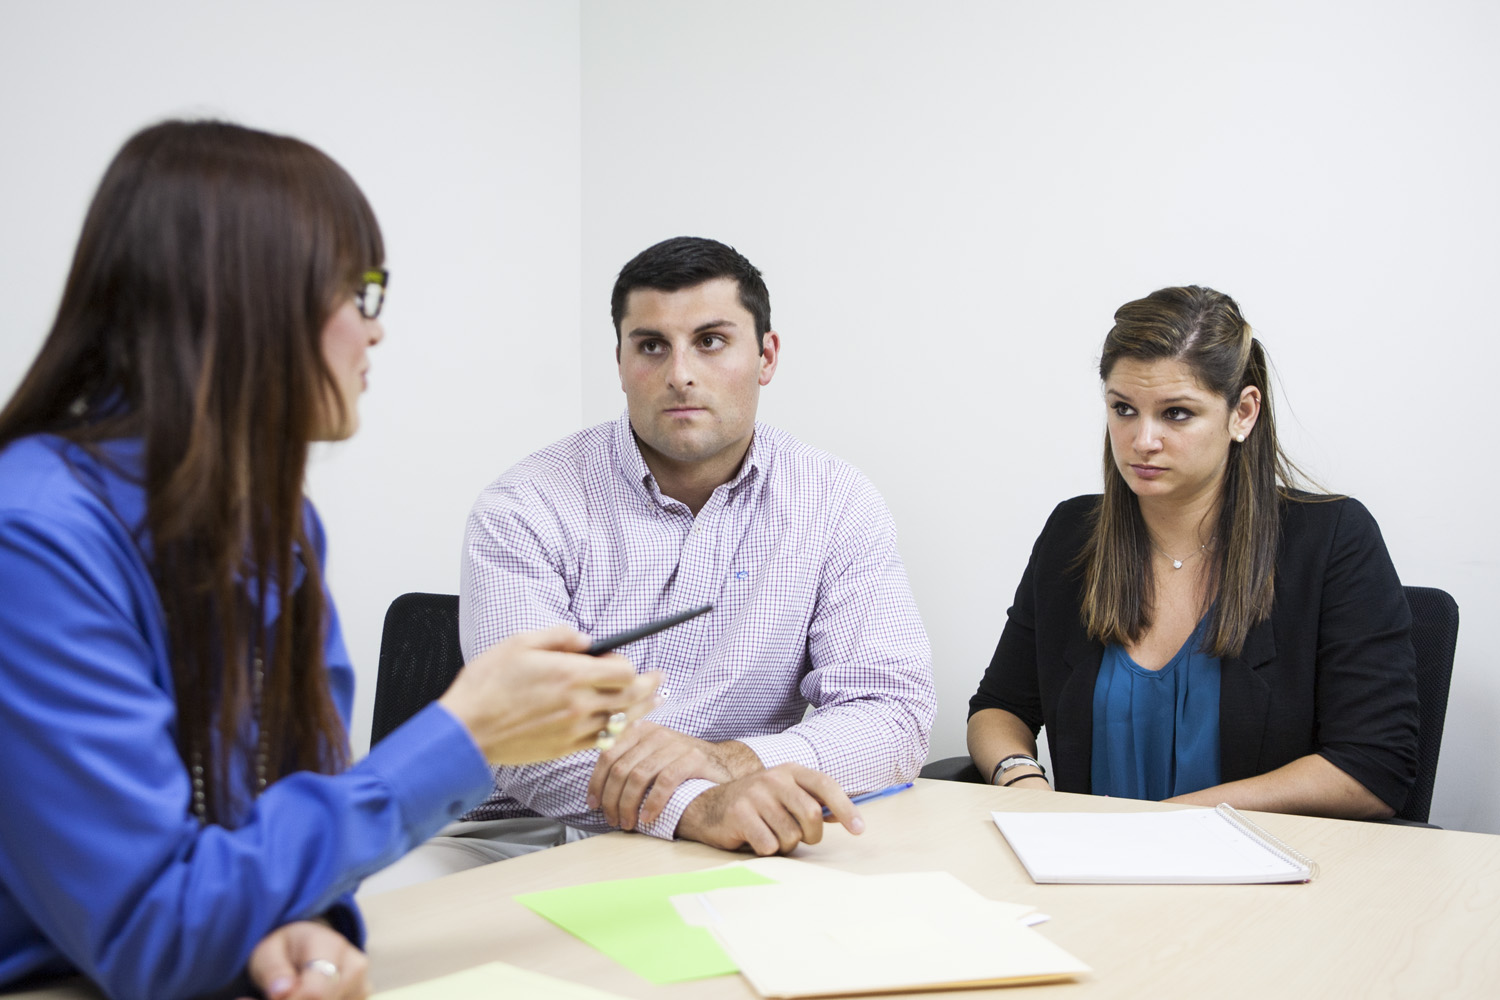 3 tips for effective collaboration (without putting employers at risk)